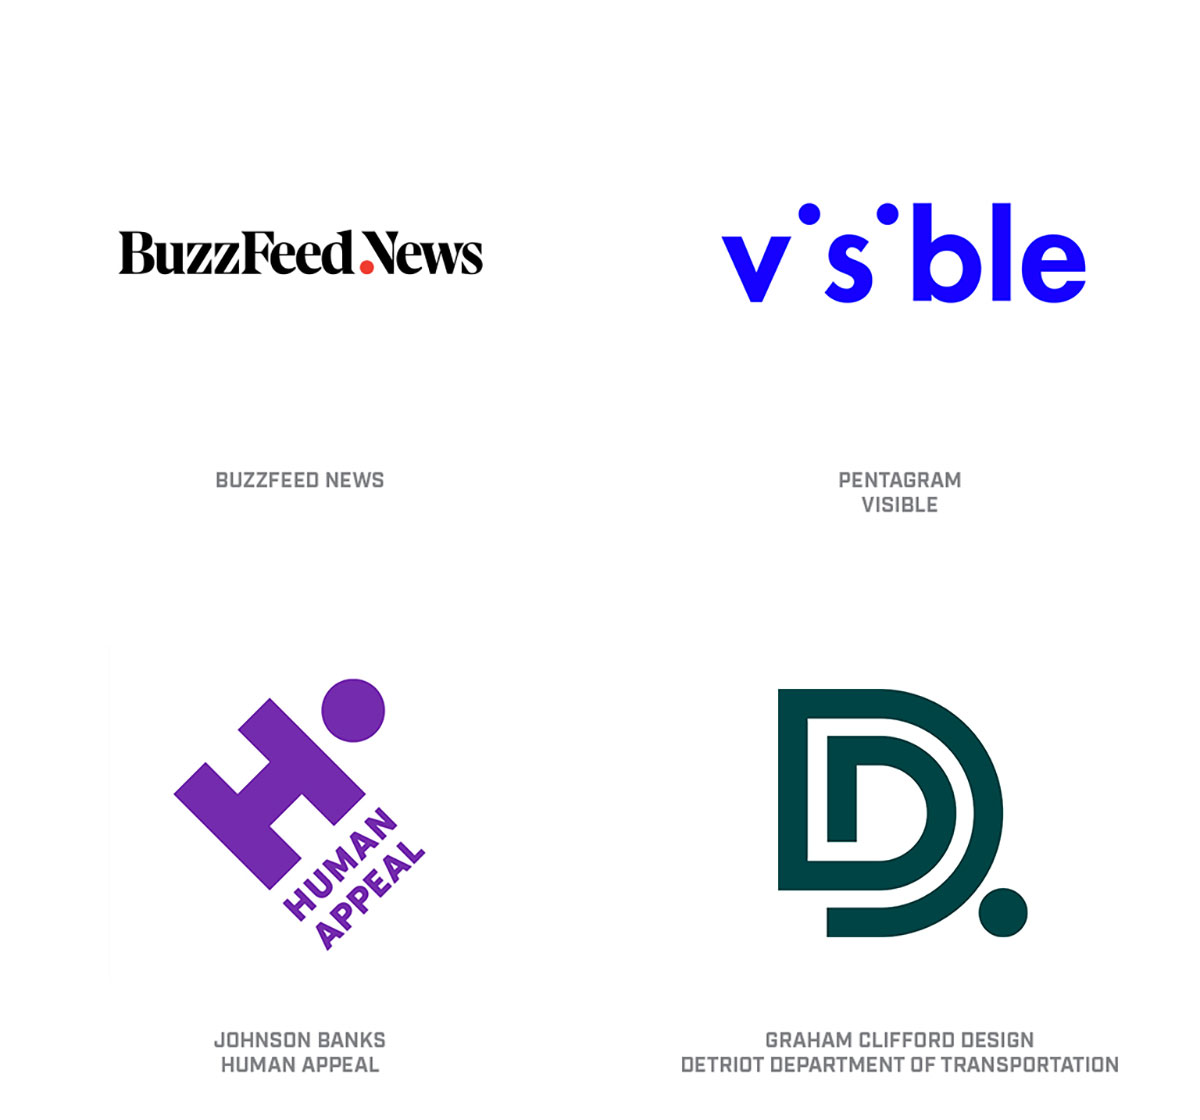 2019 logo trend report from Logolounge - Creative Review